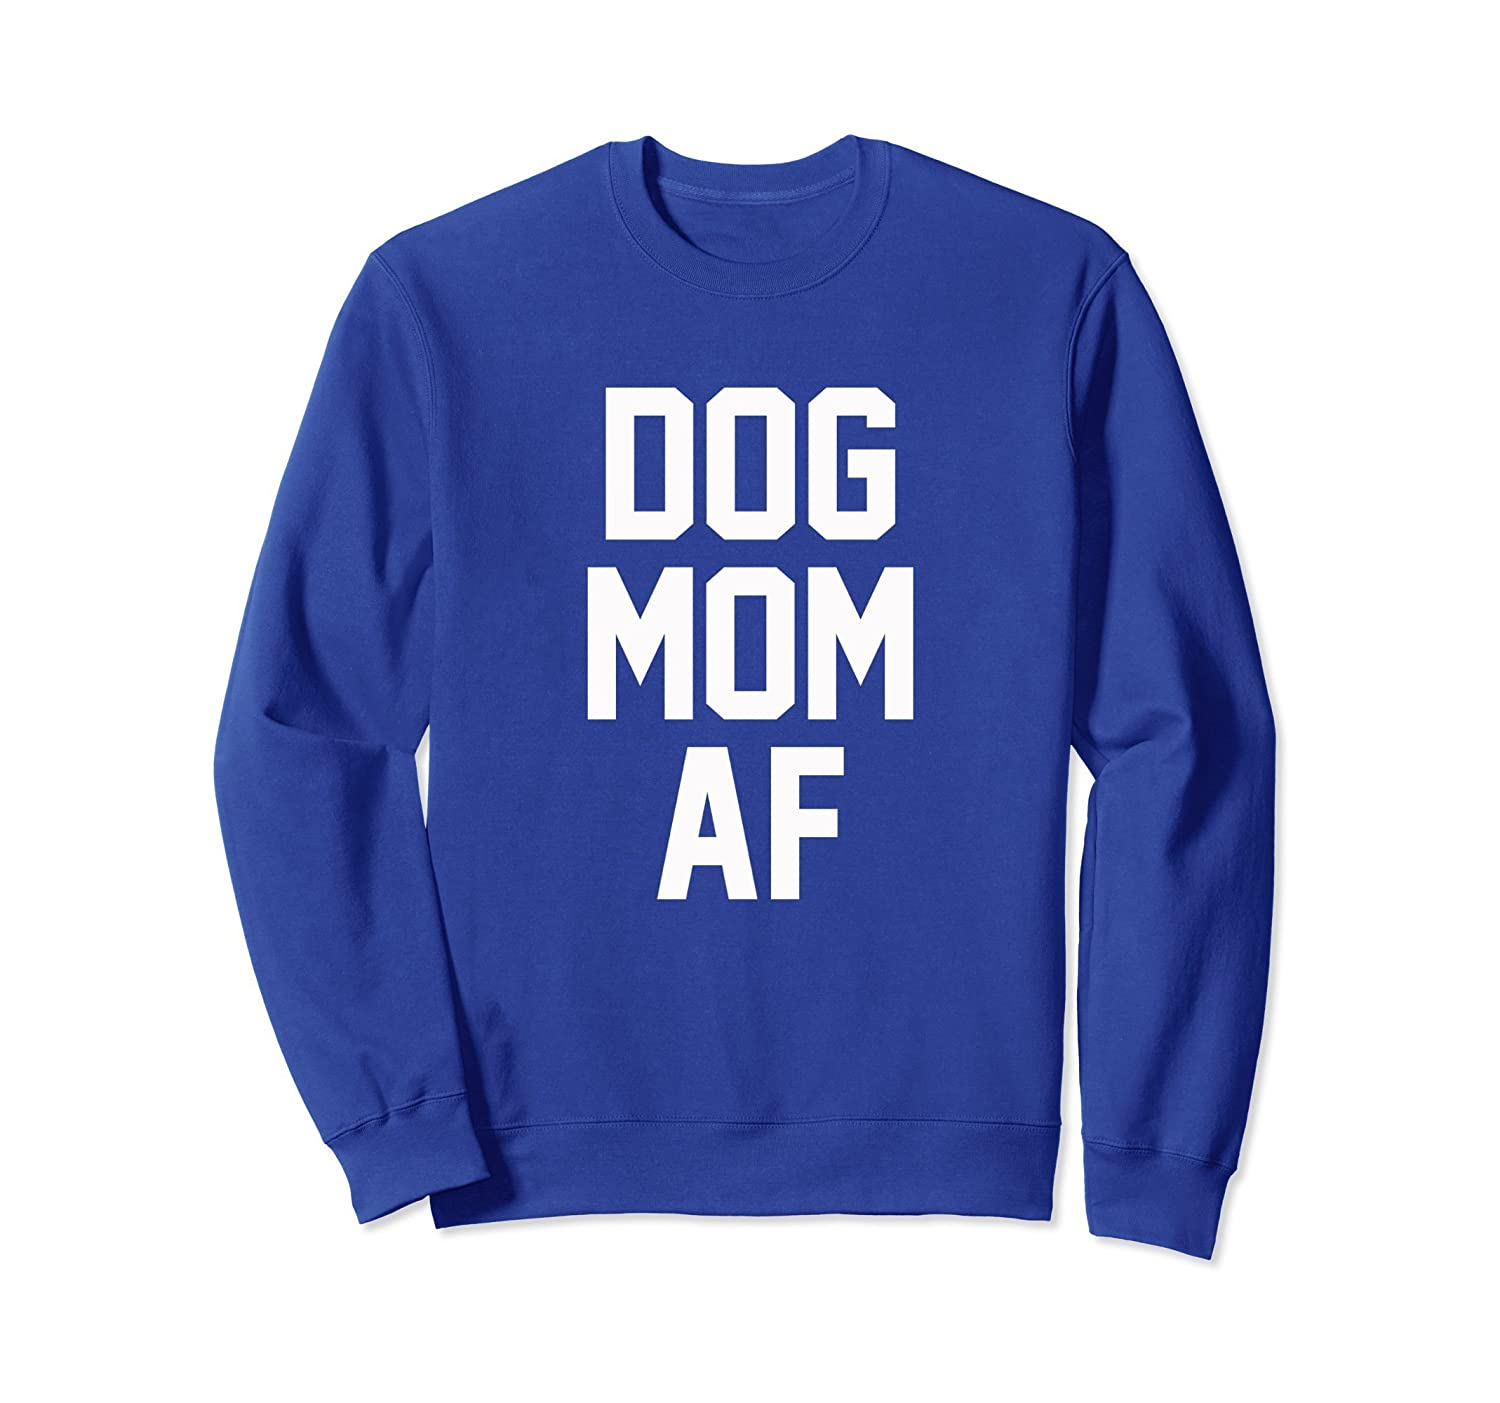 Dog Mom AF Sweatshirt for Dog Moms that Love Puppies-ah my shirt one gift